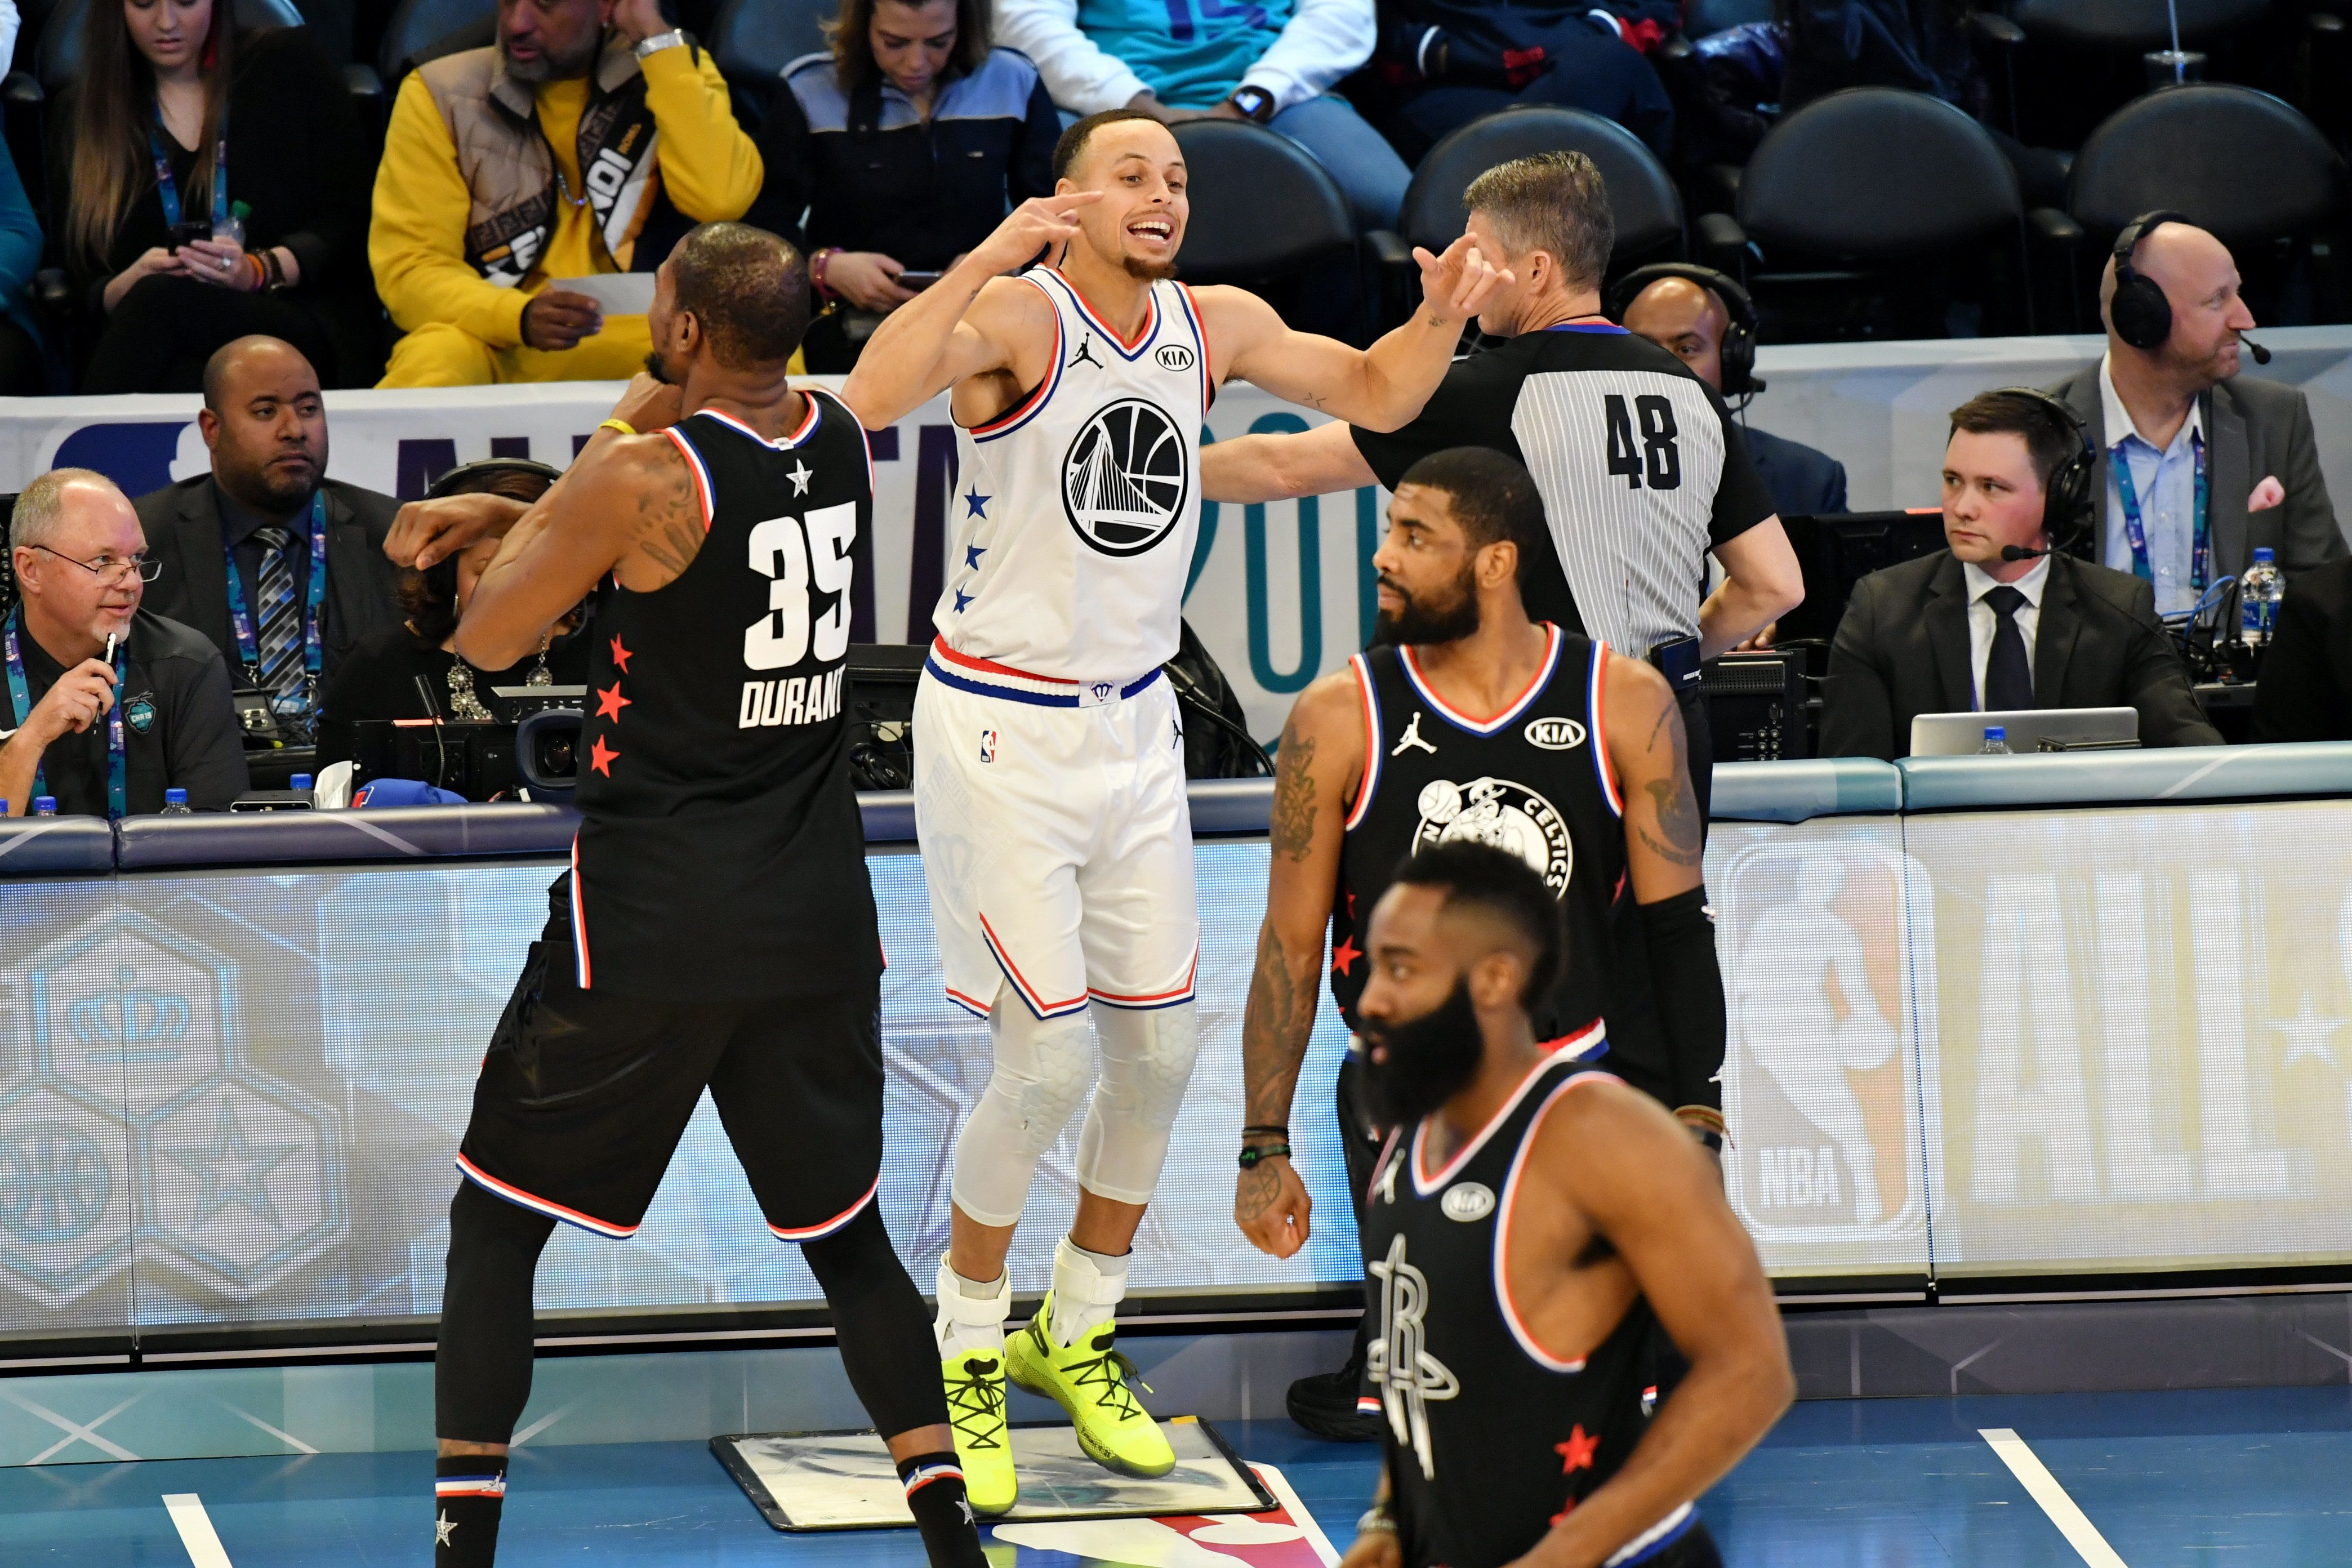 CHARLOTTE, NC - FEBRUARY 17: Stephen Curry #30 of Team Giannis enters the game against Team LeBron during the 2019 NBA All Star Game on February 17, 2019 at Spectrum Center in Charlotte, North Carolina. NOTE TO USER: User expressly acknowledges and agrees that, by downloading and or using this photograph, User is consenting to the terms and conditions of the Getty Images License Agreement.  Mandatory Copyright Notice:  Copyright 2019 NBAE (Photo by Jesse D. Garrabrant/NBAE via Getty Images)